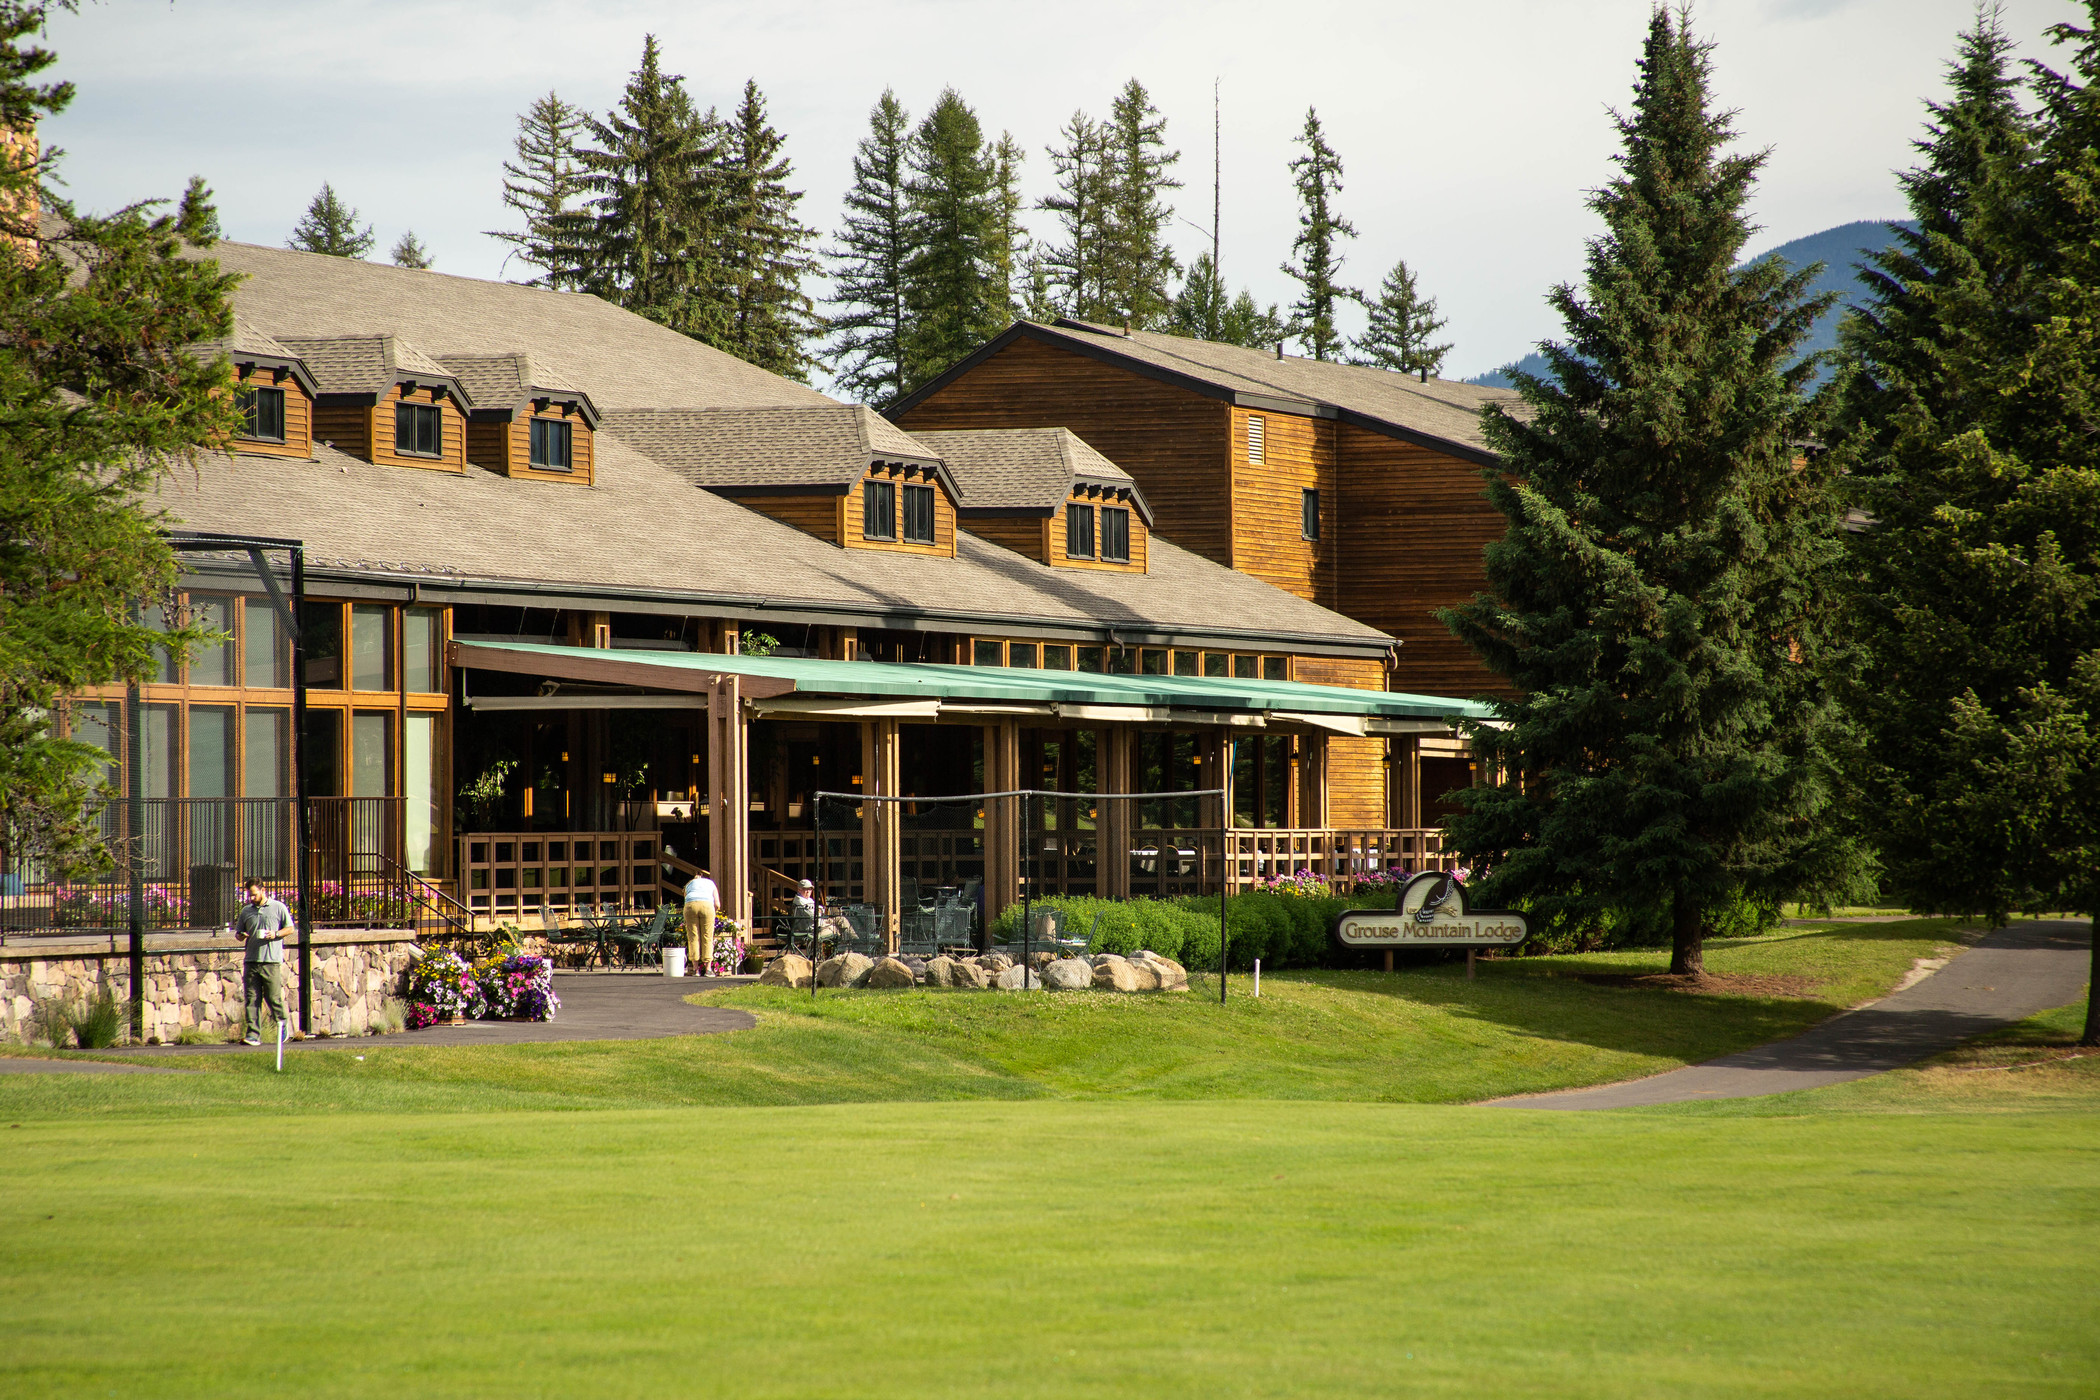 Guest Post: 5 Reasons Grouse Mountain Lodge Is Your Next Conference Destination in Western Montana